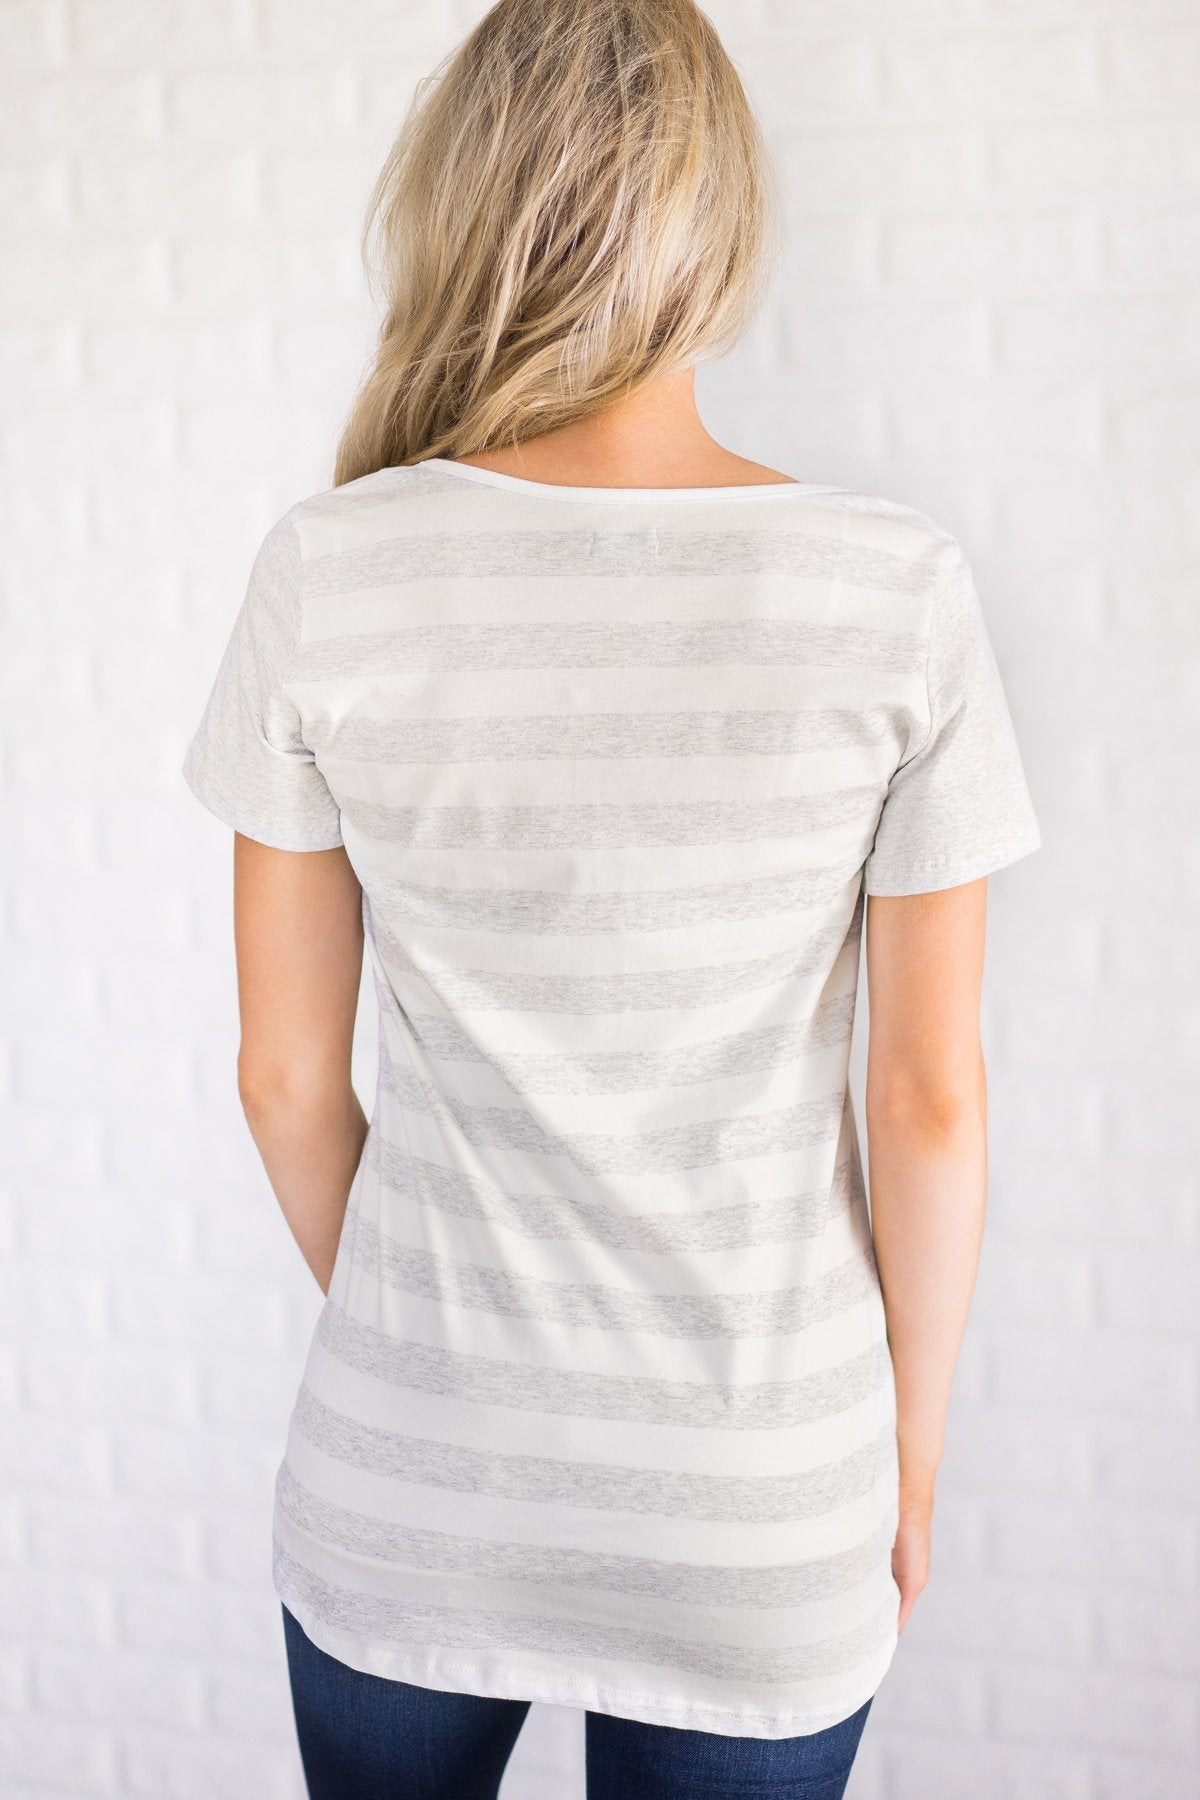 Ampersand Striped V-Neck Tee - Heather Grey